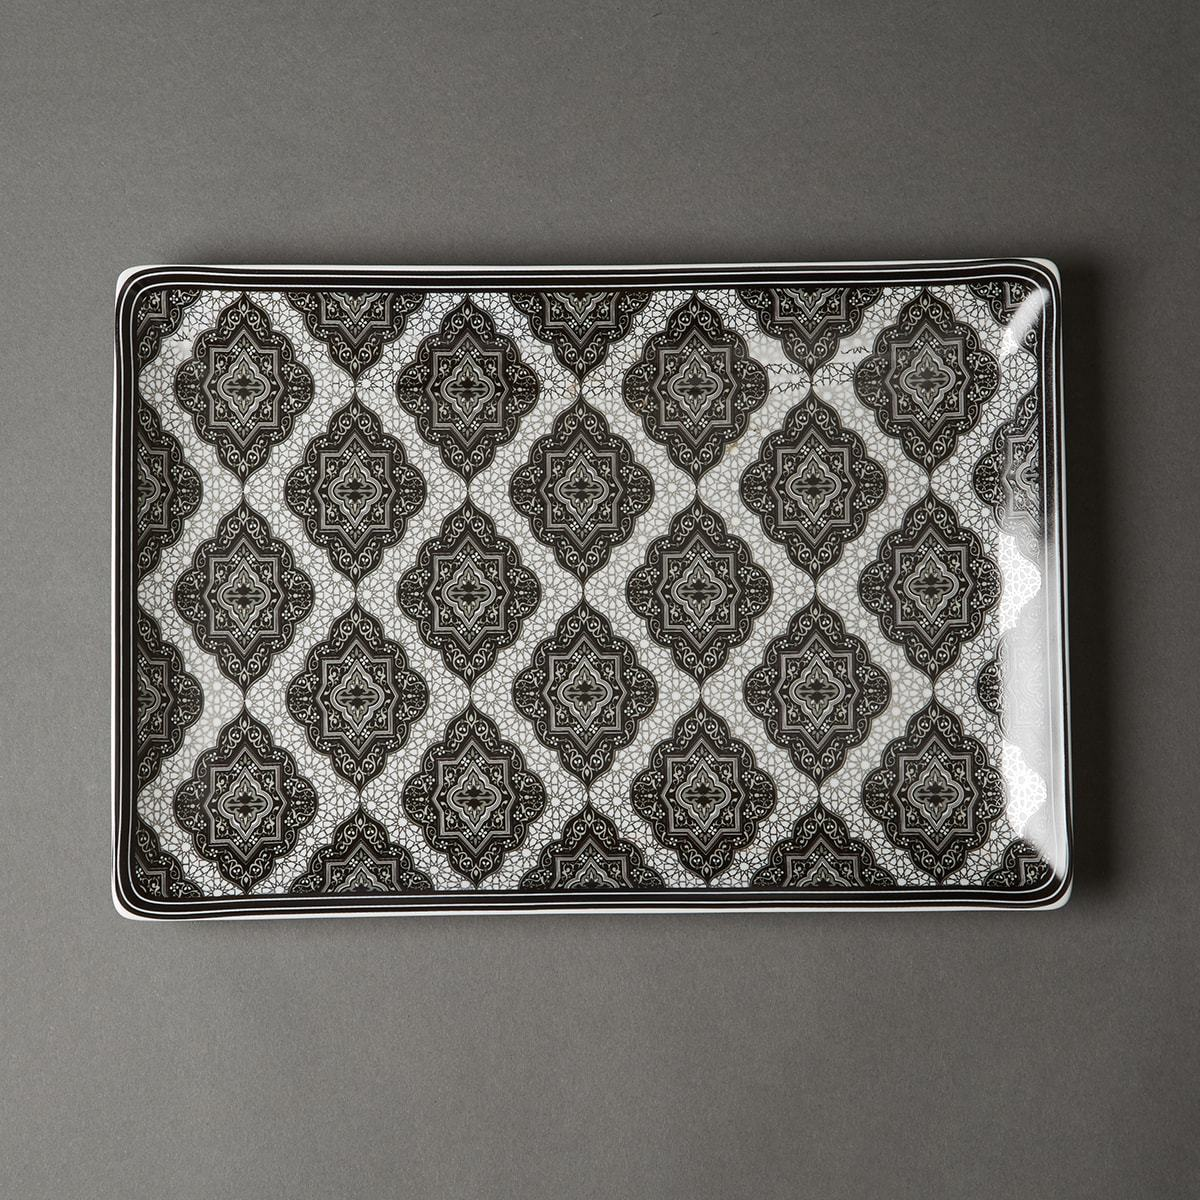 Black & White Awadh Porcelain Rectangle Platter (Large) by Ritu Kumar Home